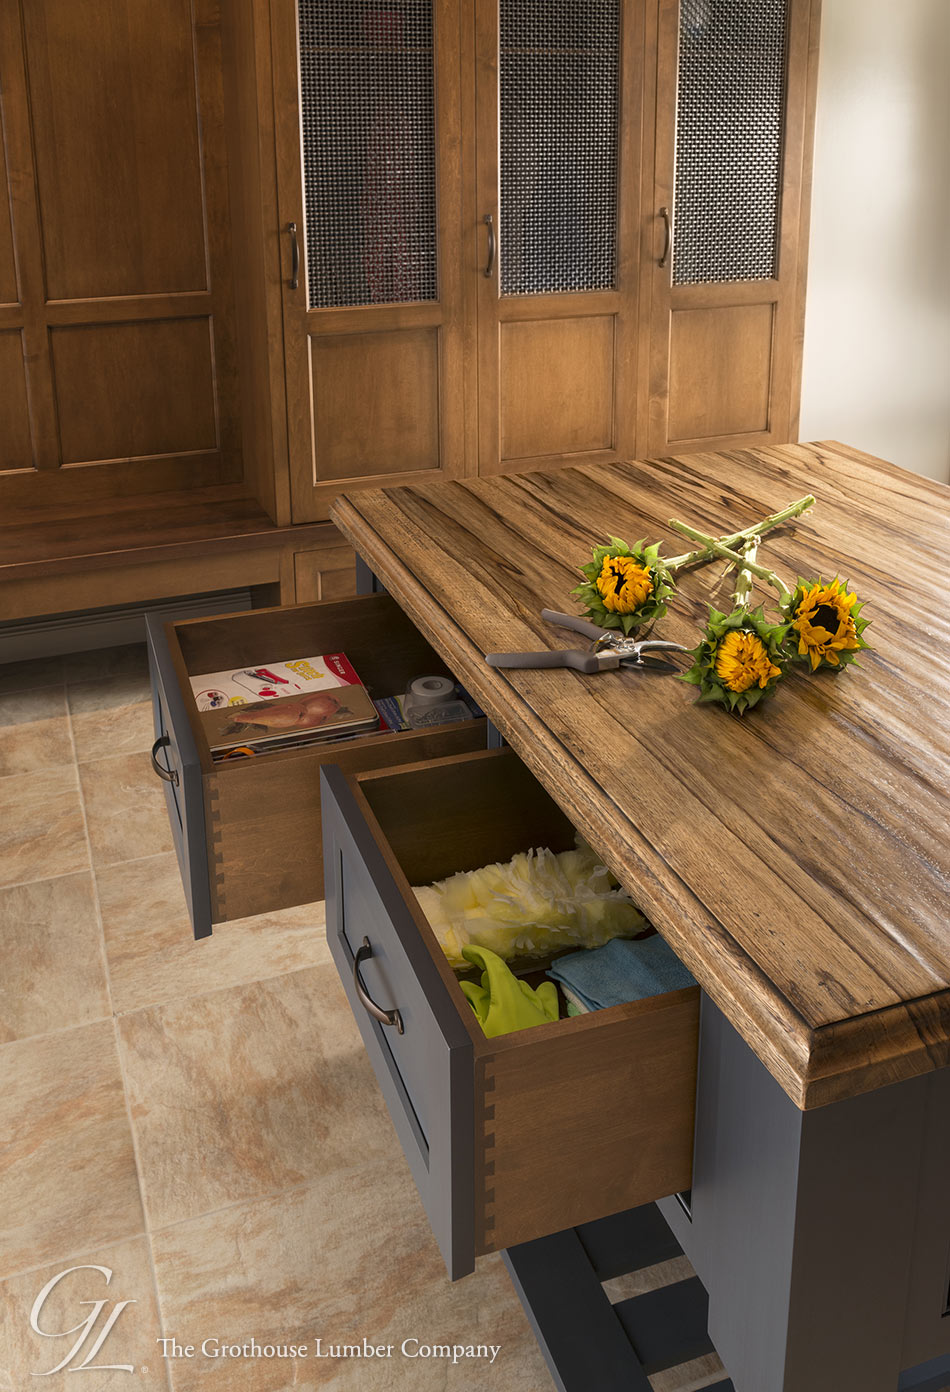 Grothouse Custom Saxon Wood™ Island Countertop